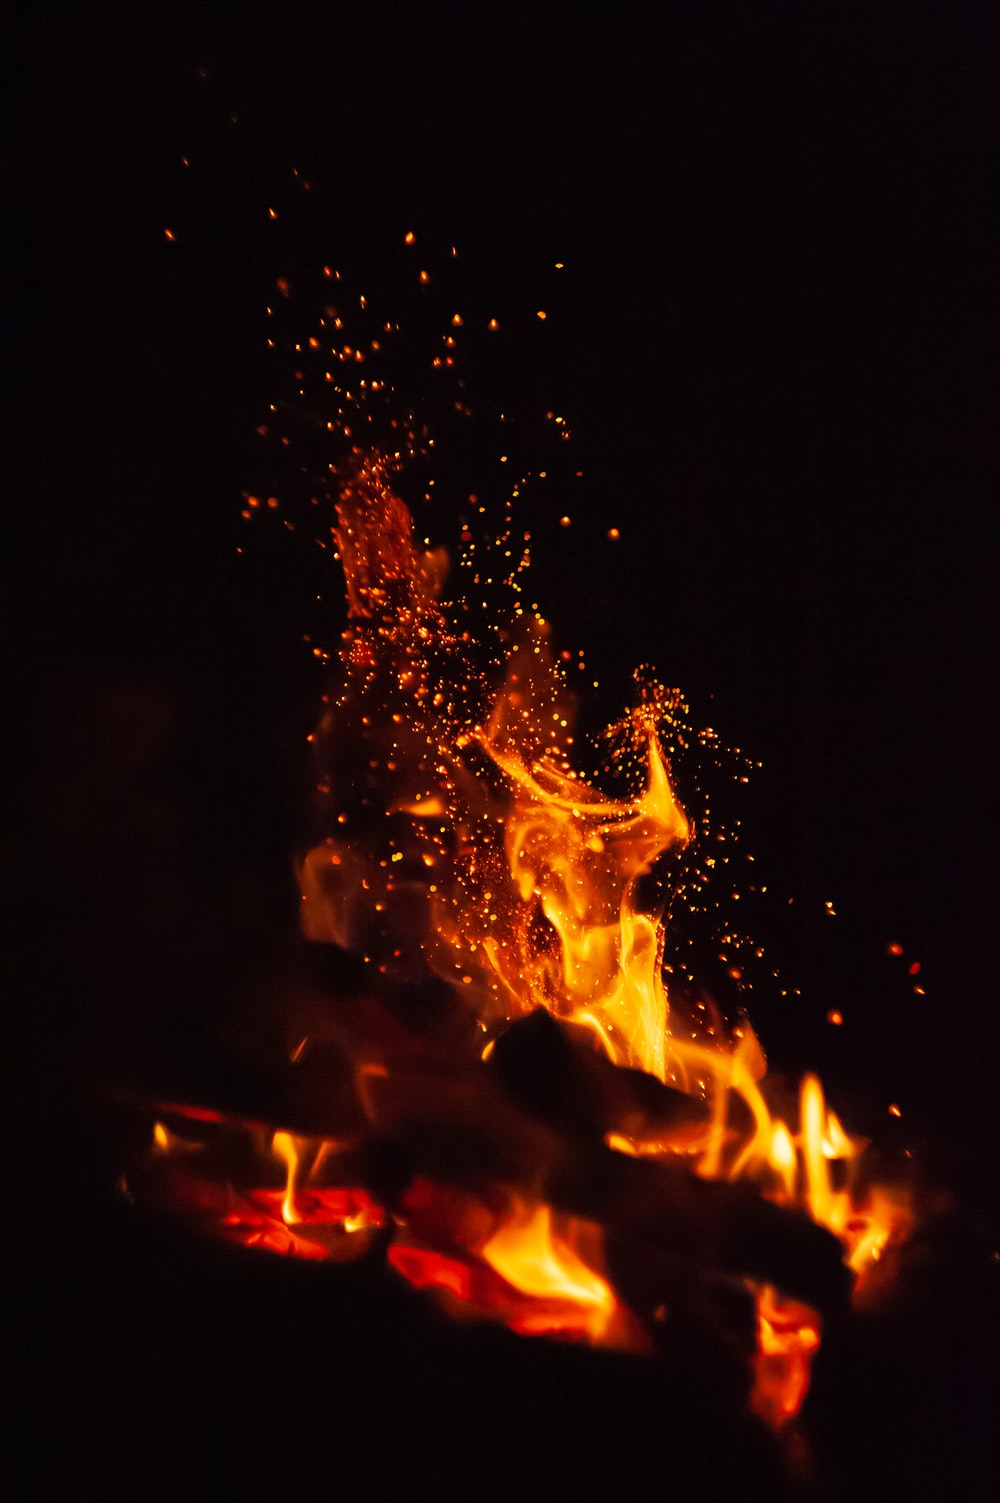 fire in the middle of the fire